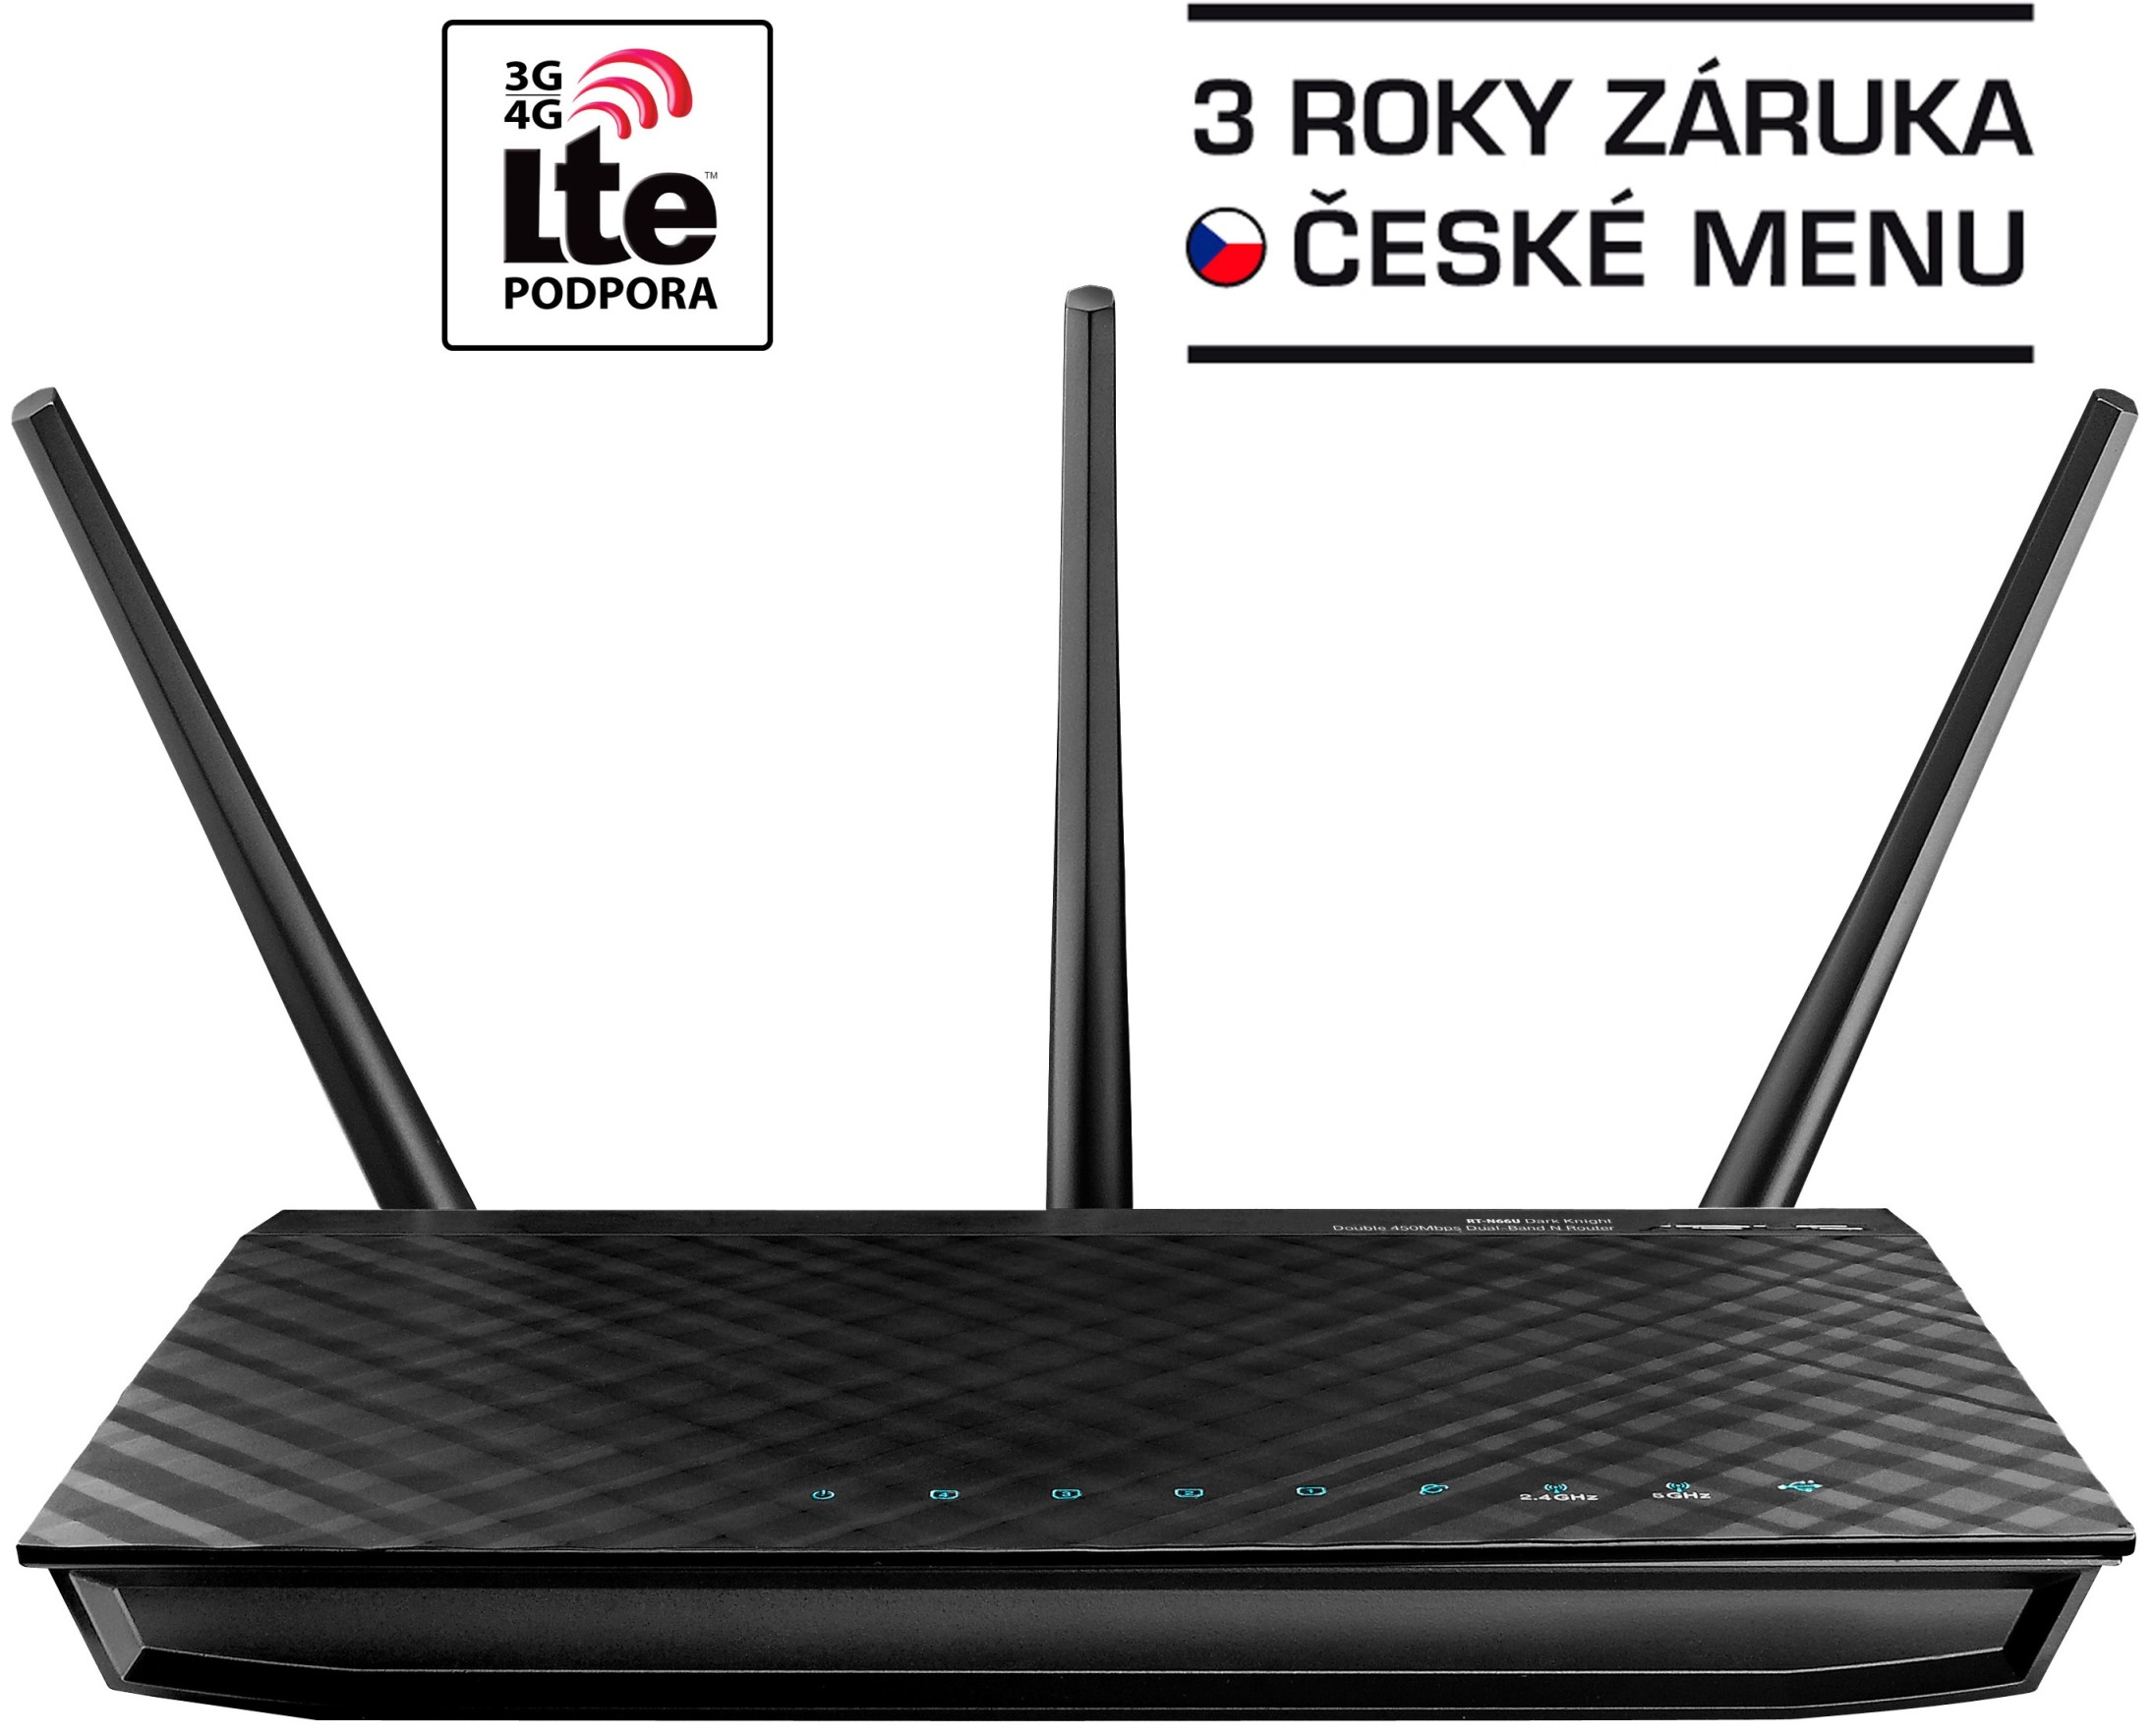 ASUS RT-N66U Dual-B Wifi-N900 Gb router